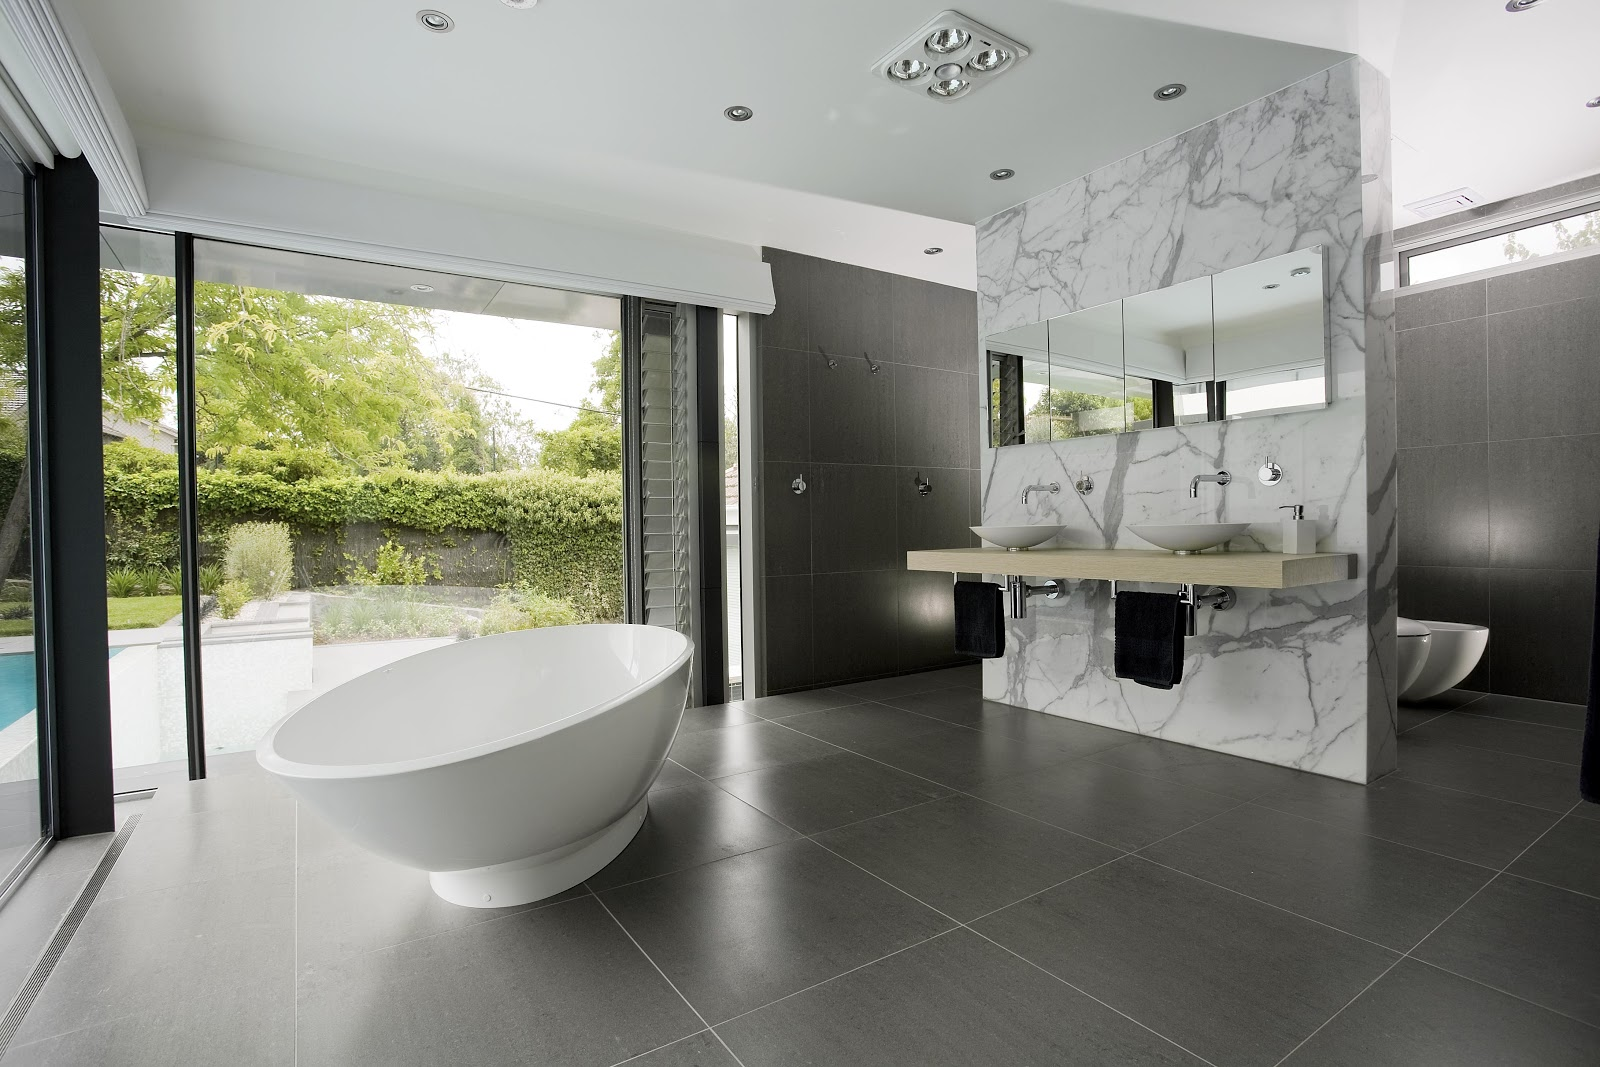 Modern Bathroom Design Ideas: The Search For Something Different